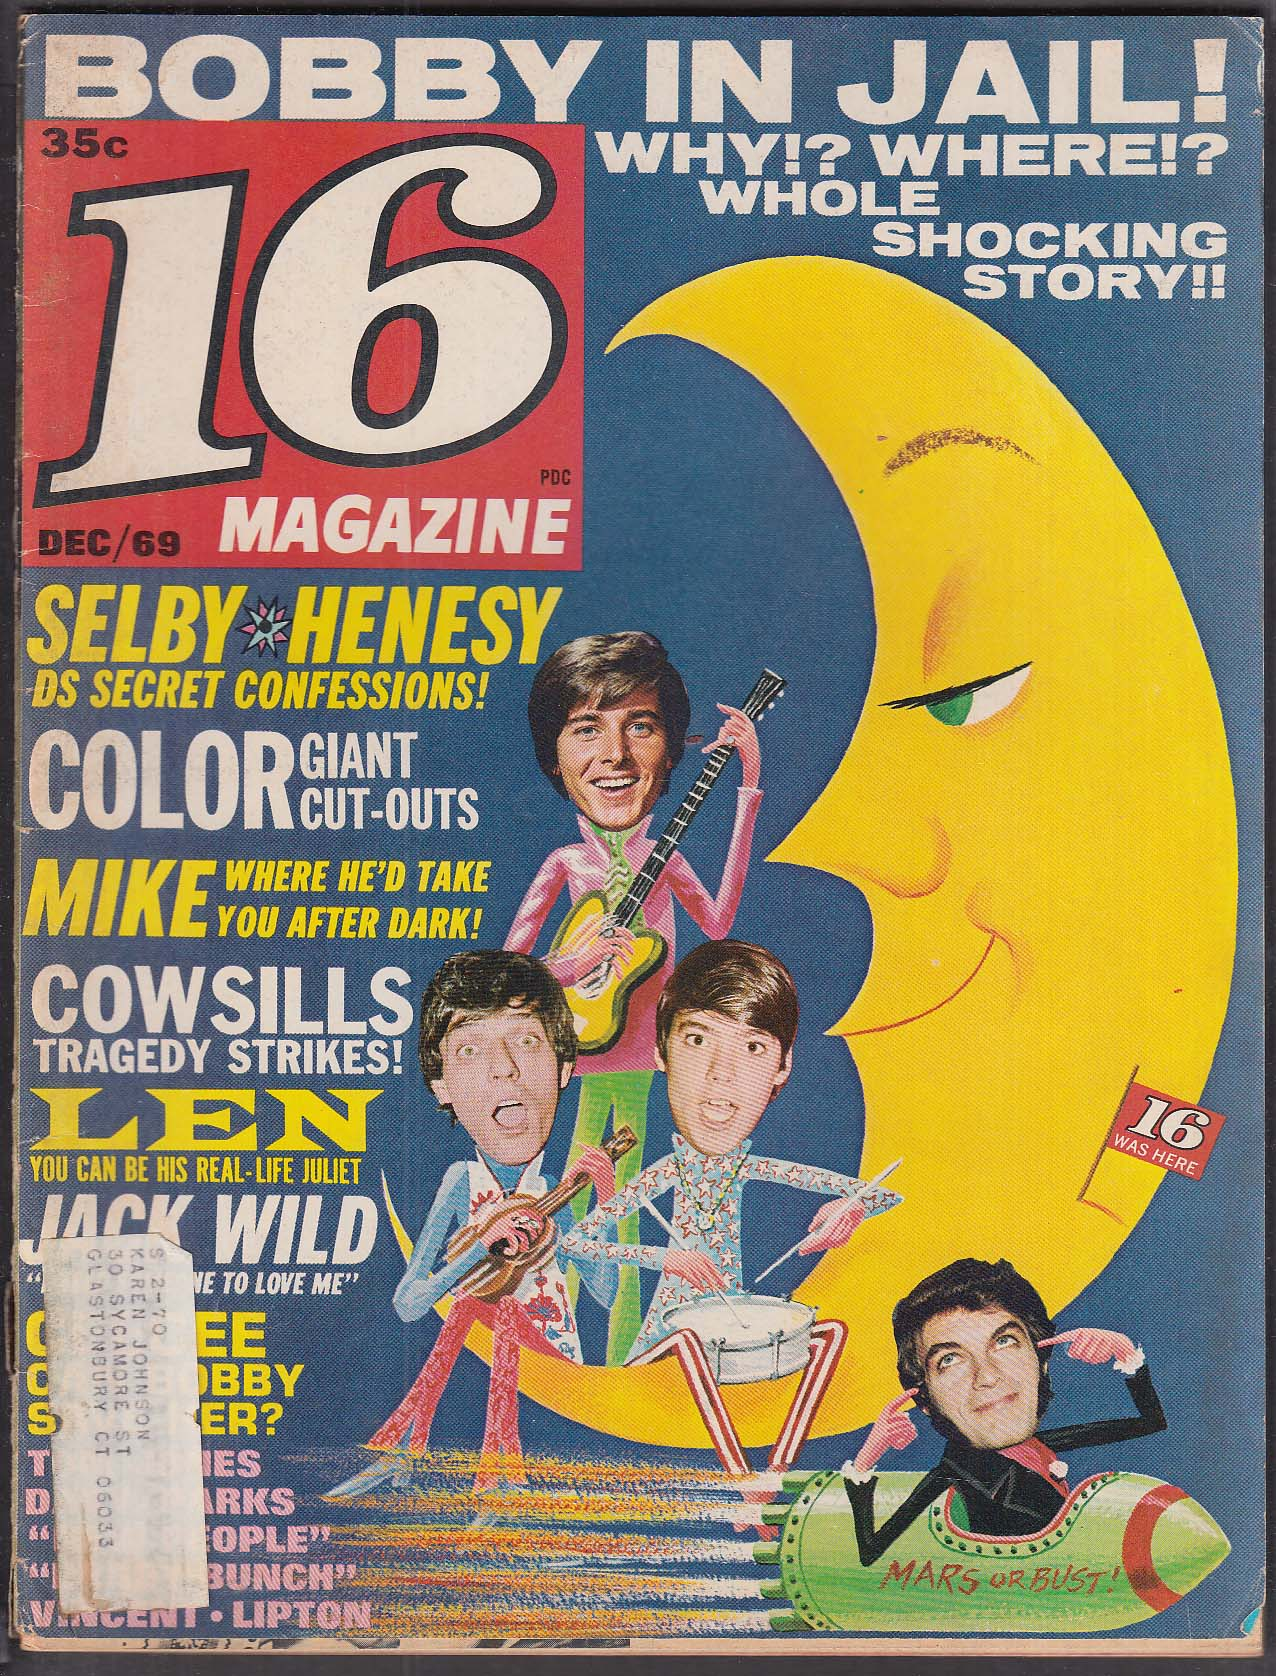 16 Bobby Sherman Desi Arnaz Mike Cole Davy Jones Cowsills 12 1969